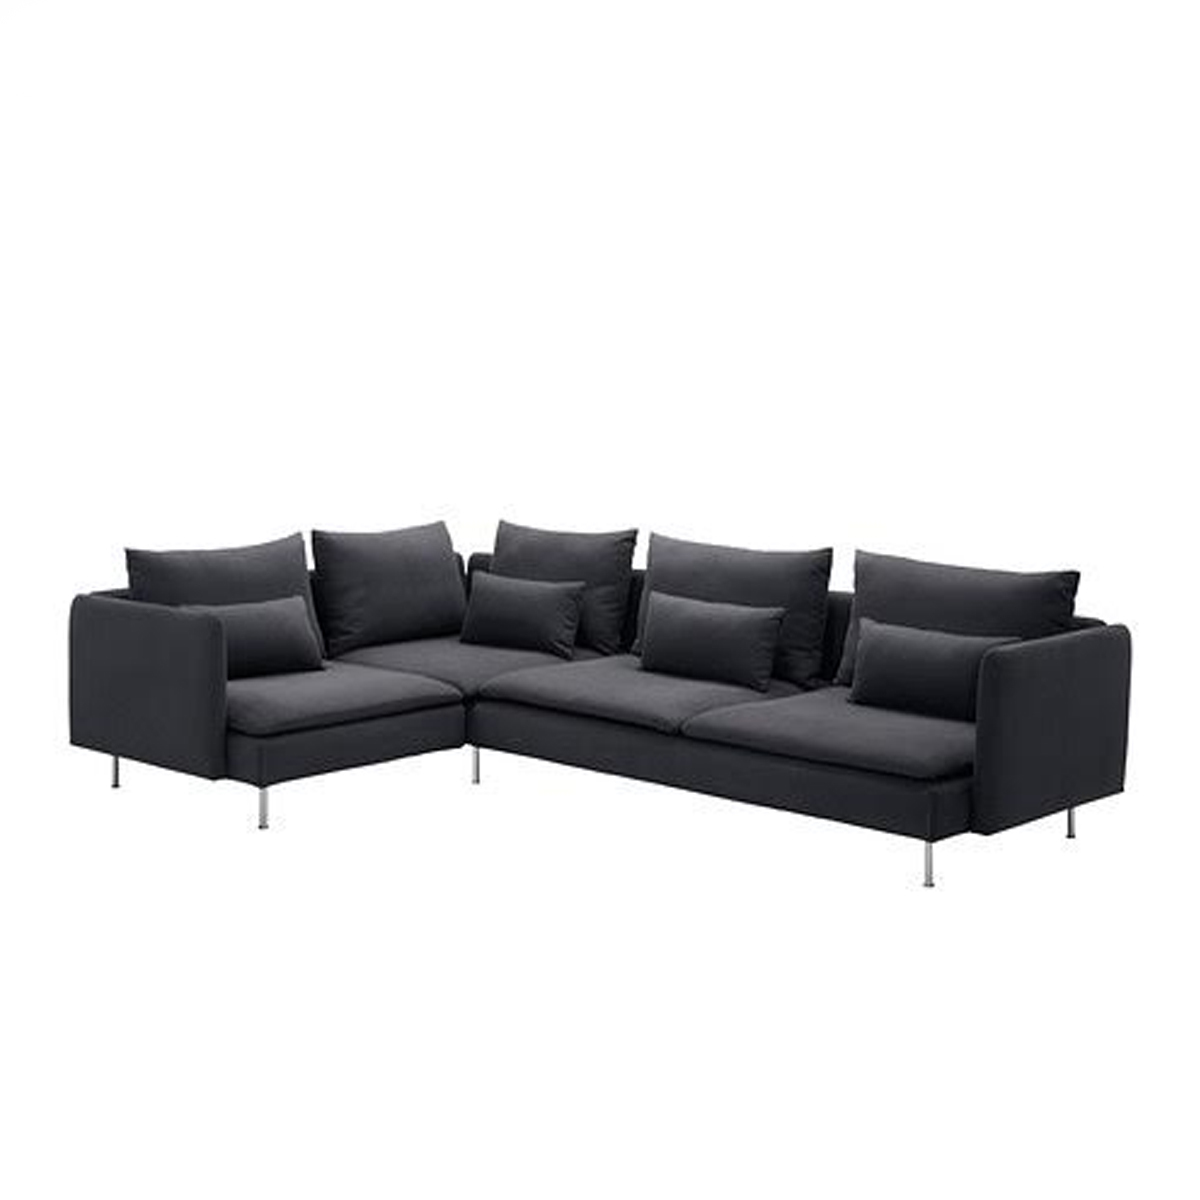 Exterior Seating Area: Soderhamn Sectional photo